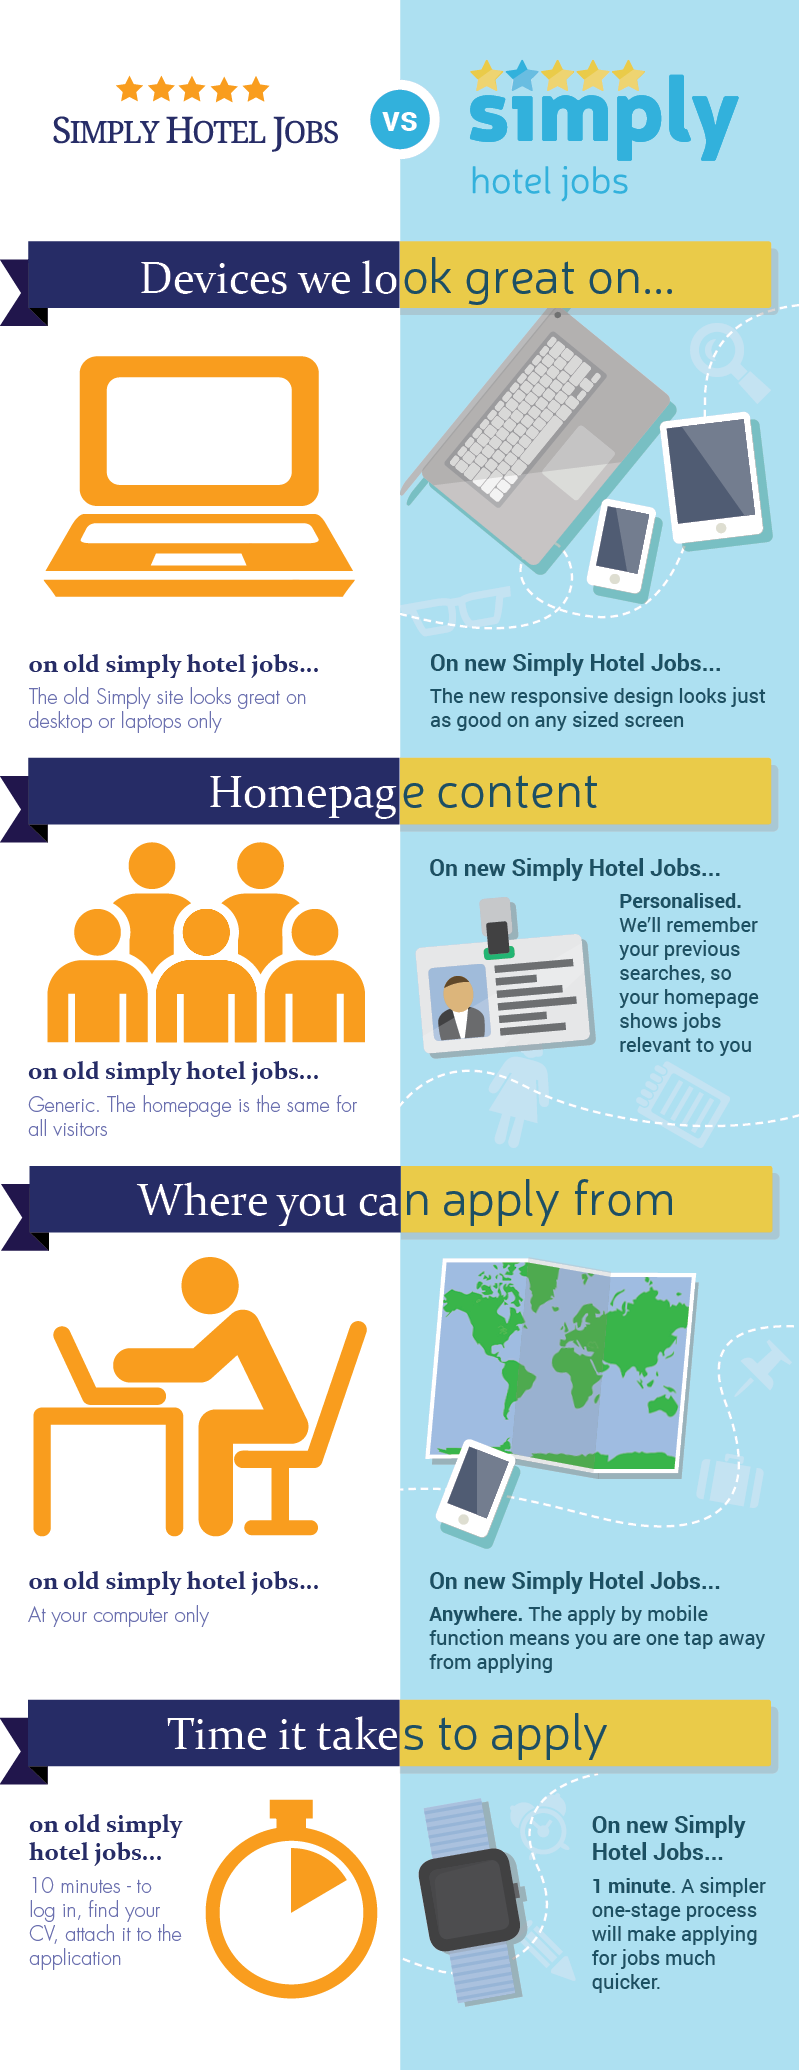 Simply Hotel Jobs Announced New Mobile-Friendly Site